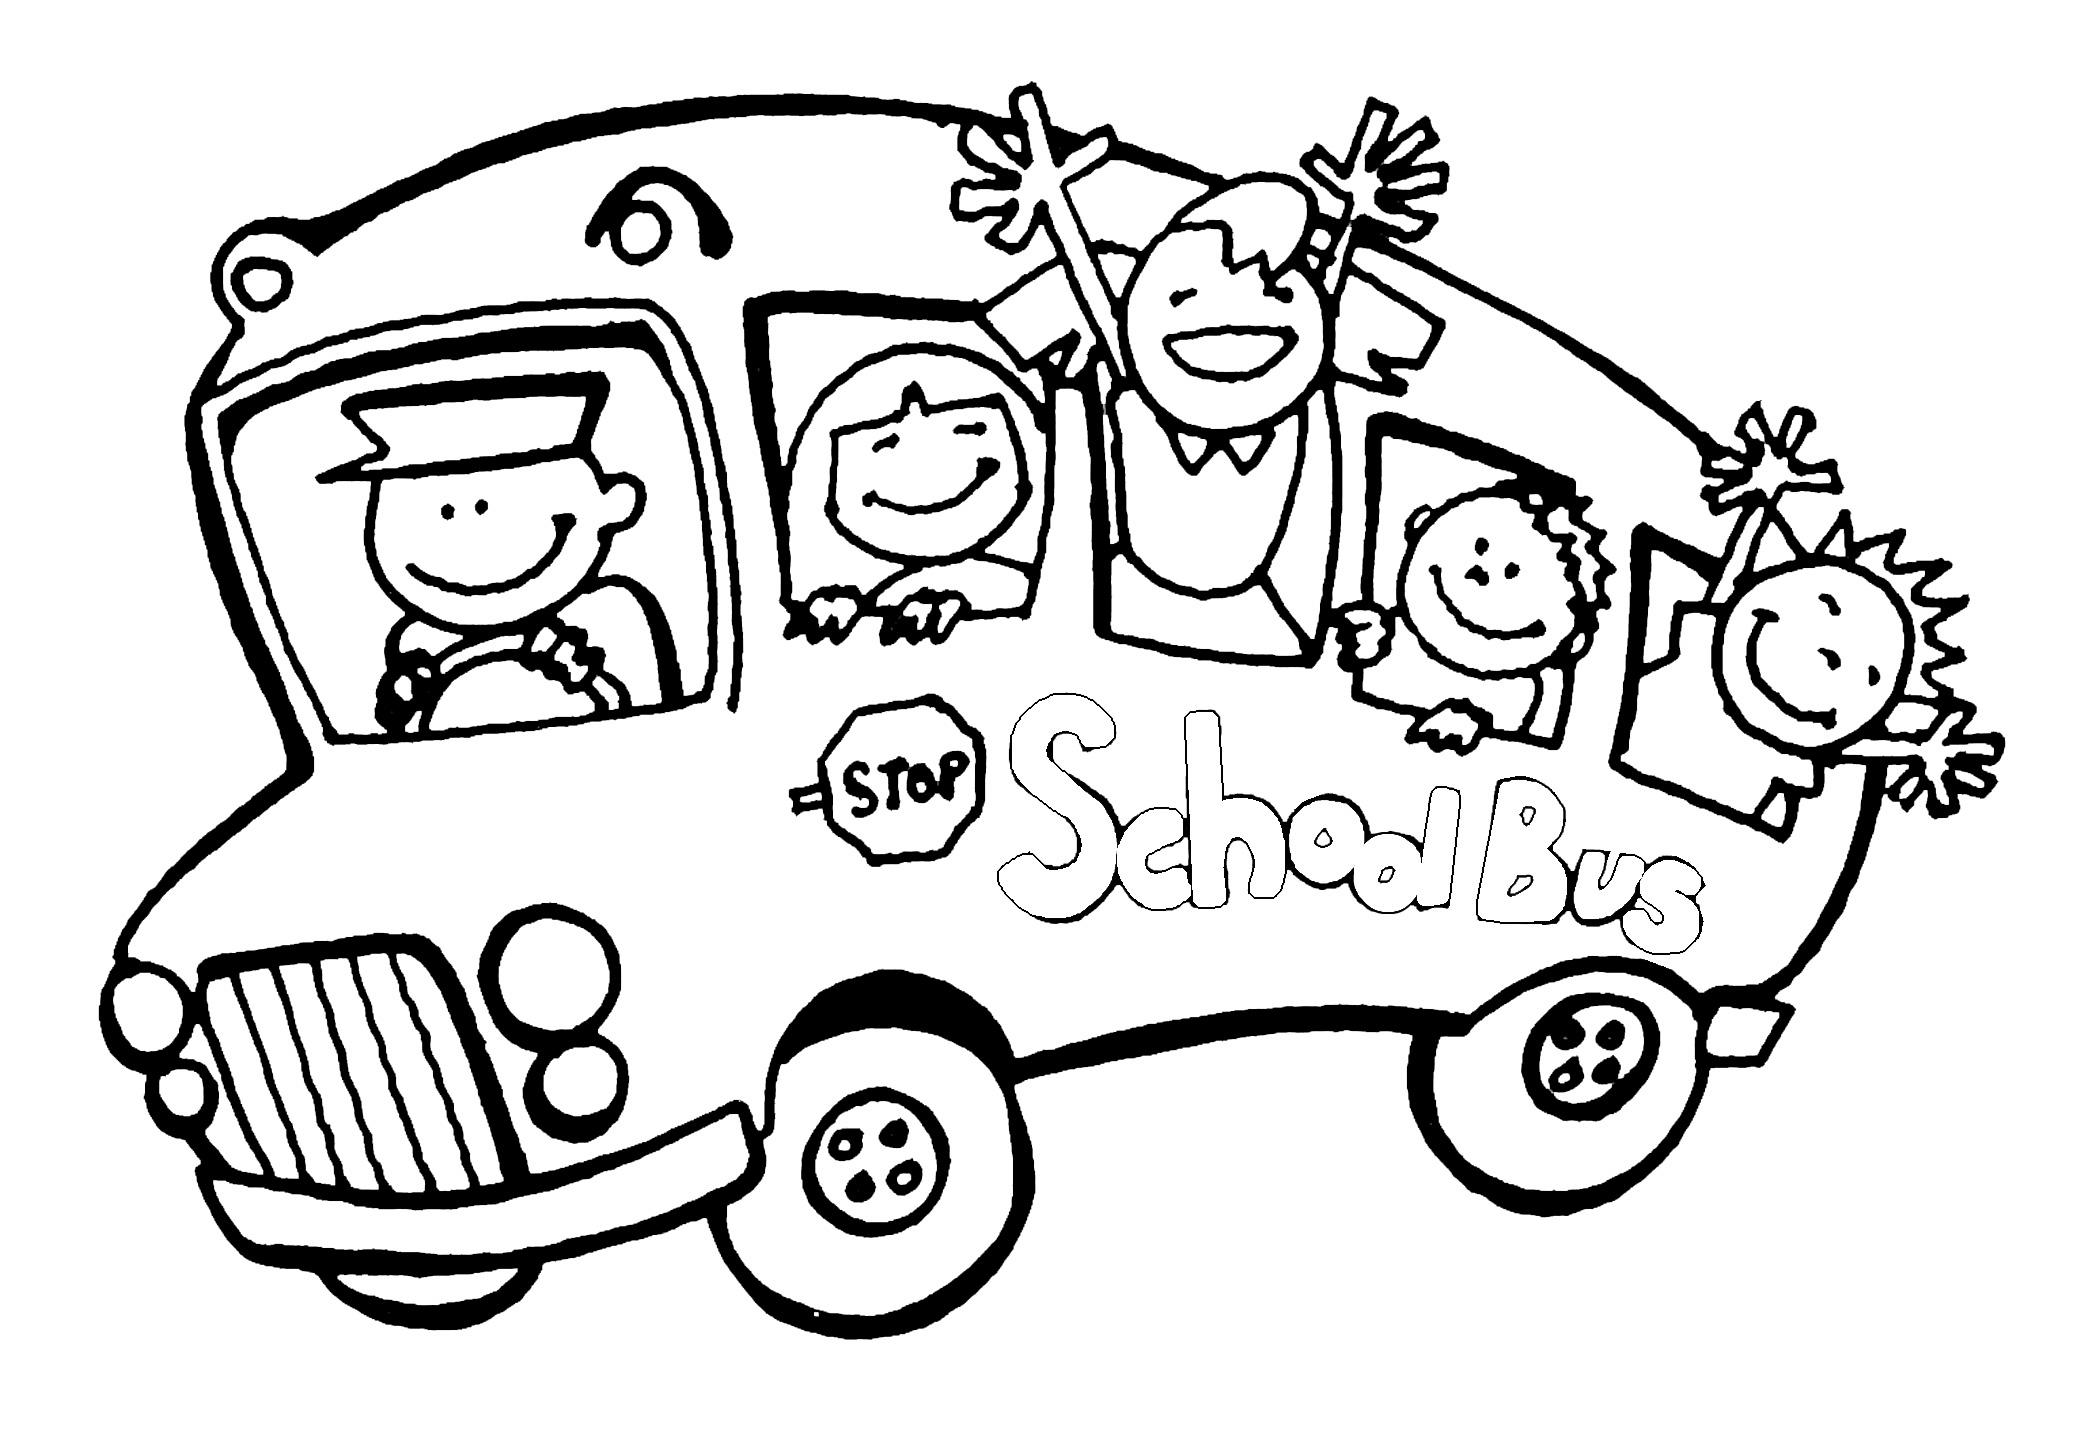 Pre k coloring pages - 17 Free Pictures For Pre K Coloring Pages Temoon Us